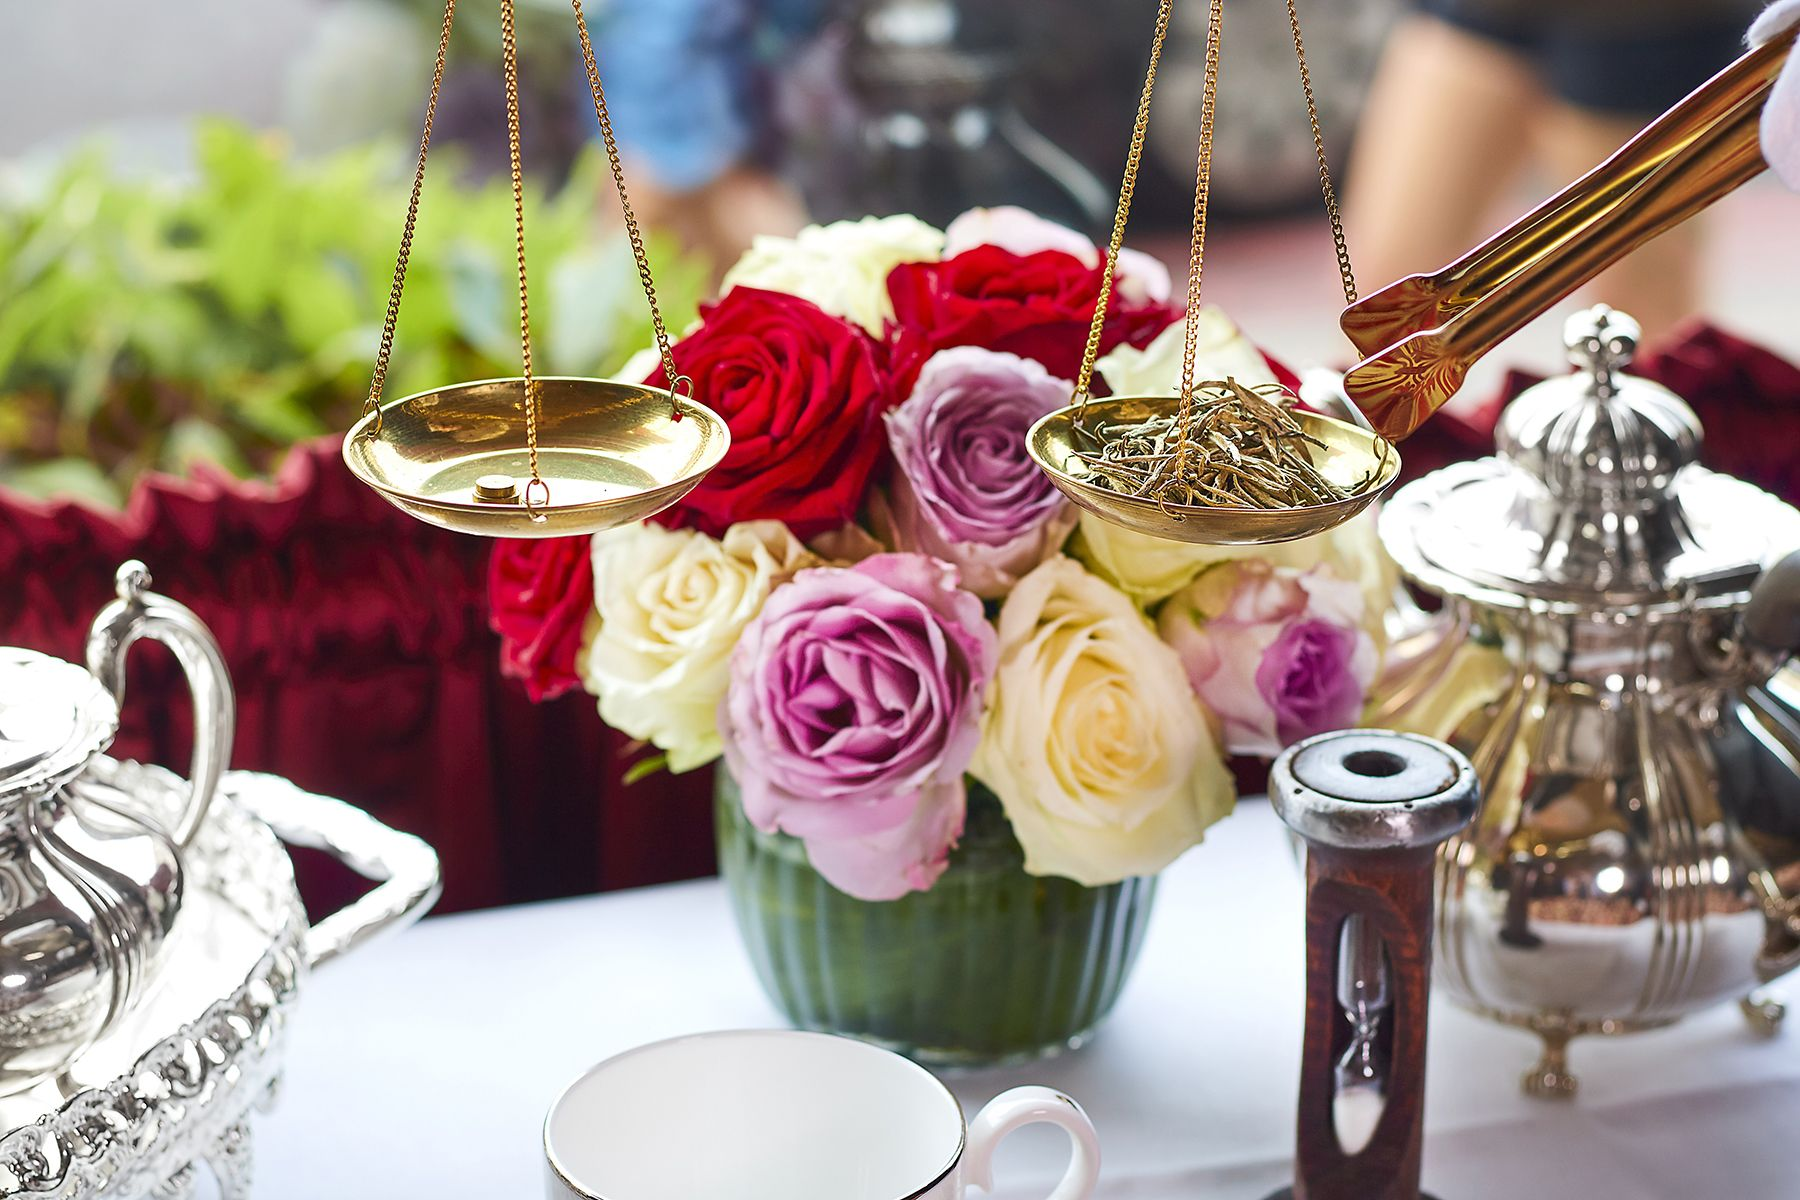 Where To Sip The Most Expensive Tea In The UK